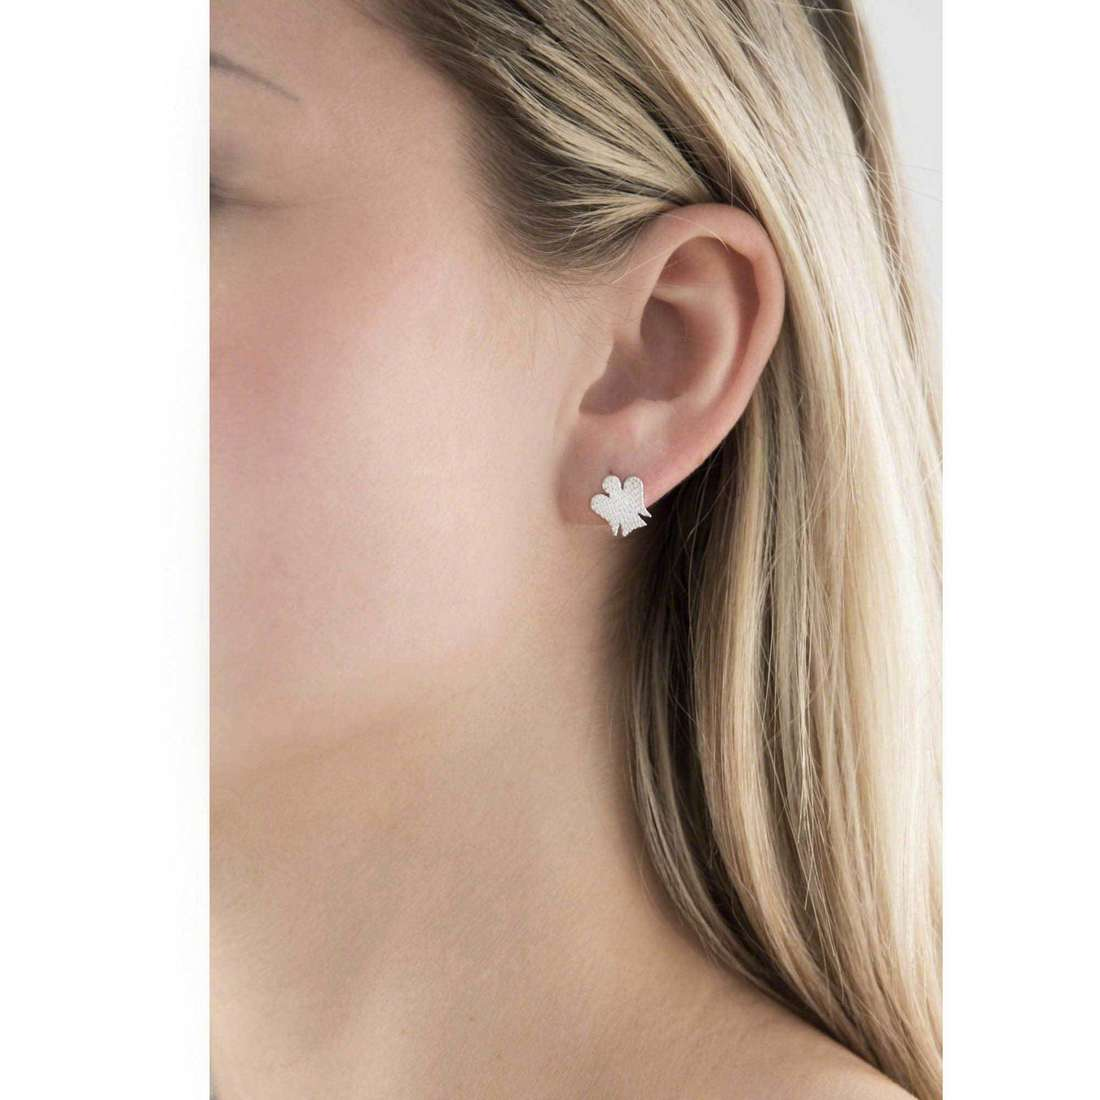 Giannotti earrings woman GIA286 indosso